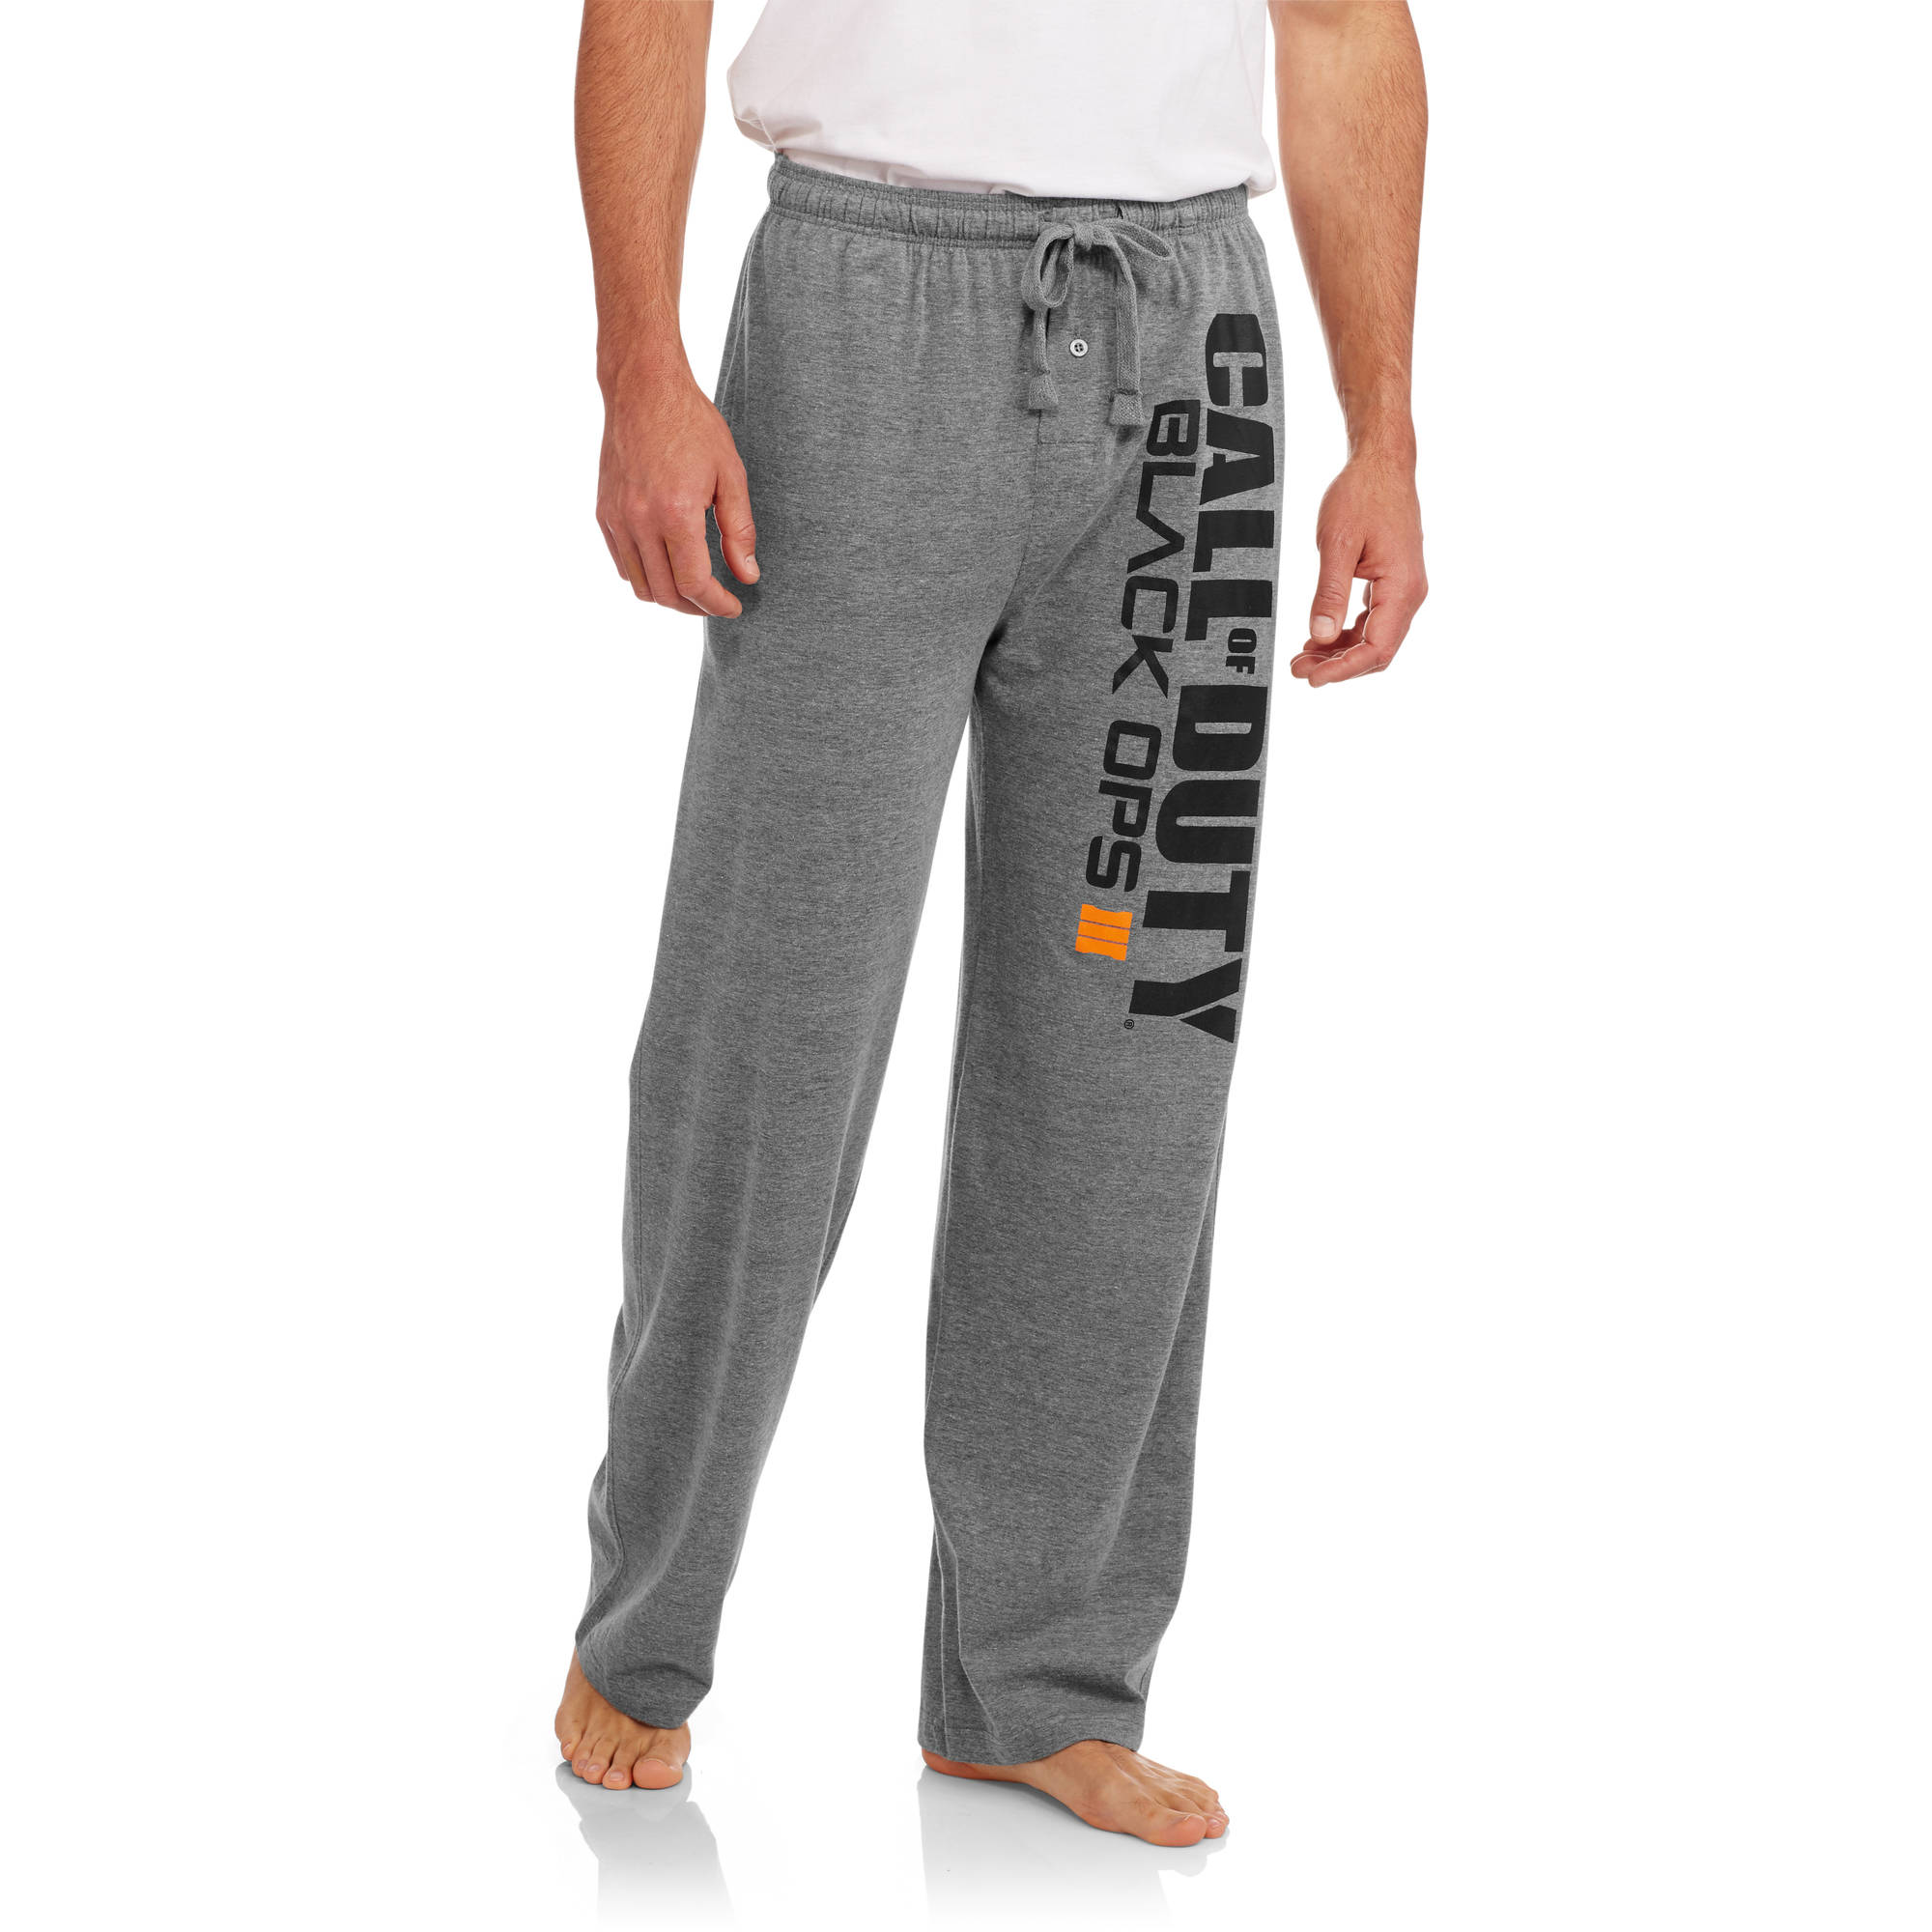 Call of Duty Men's Knit Sleep Pants